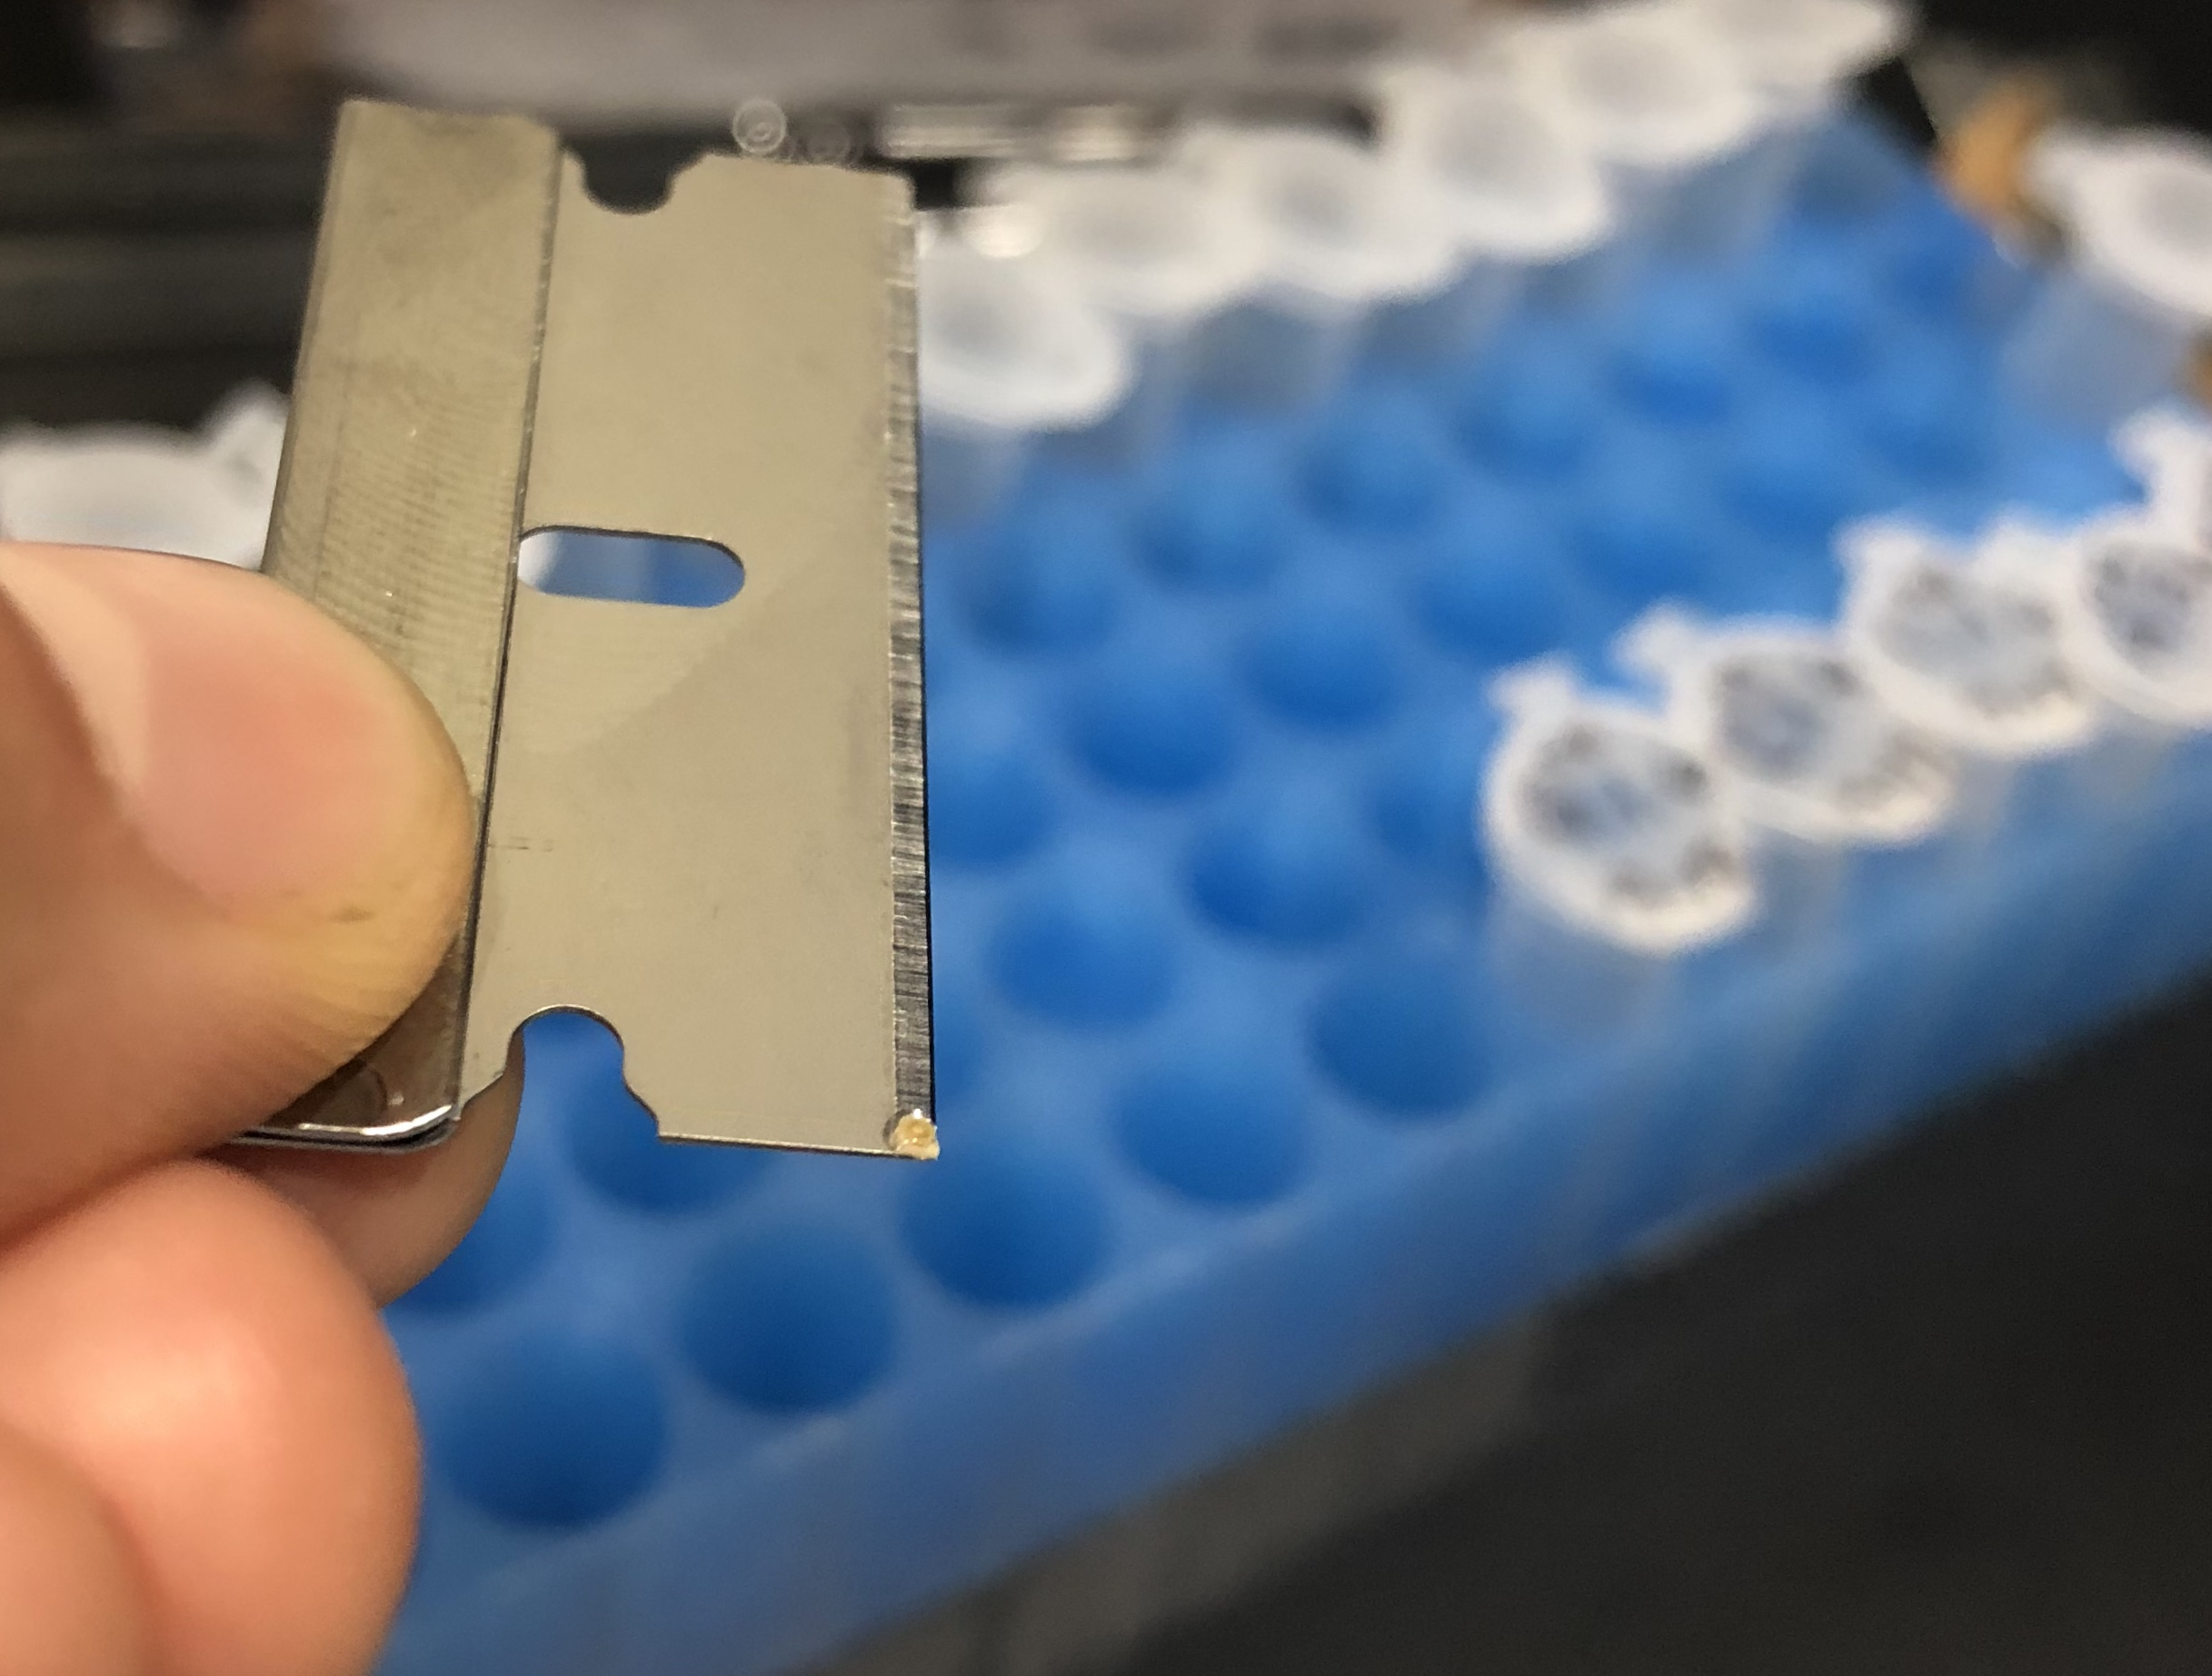 To collect data on which symbiont types a recruit is hosting, I have to sacrifice it with a razor blade. A single recruit - approximately 1 millimeter in diameter - is on the end of the razor blade above.